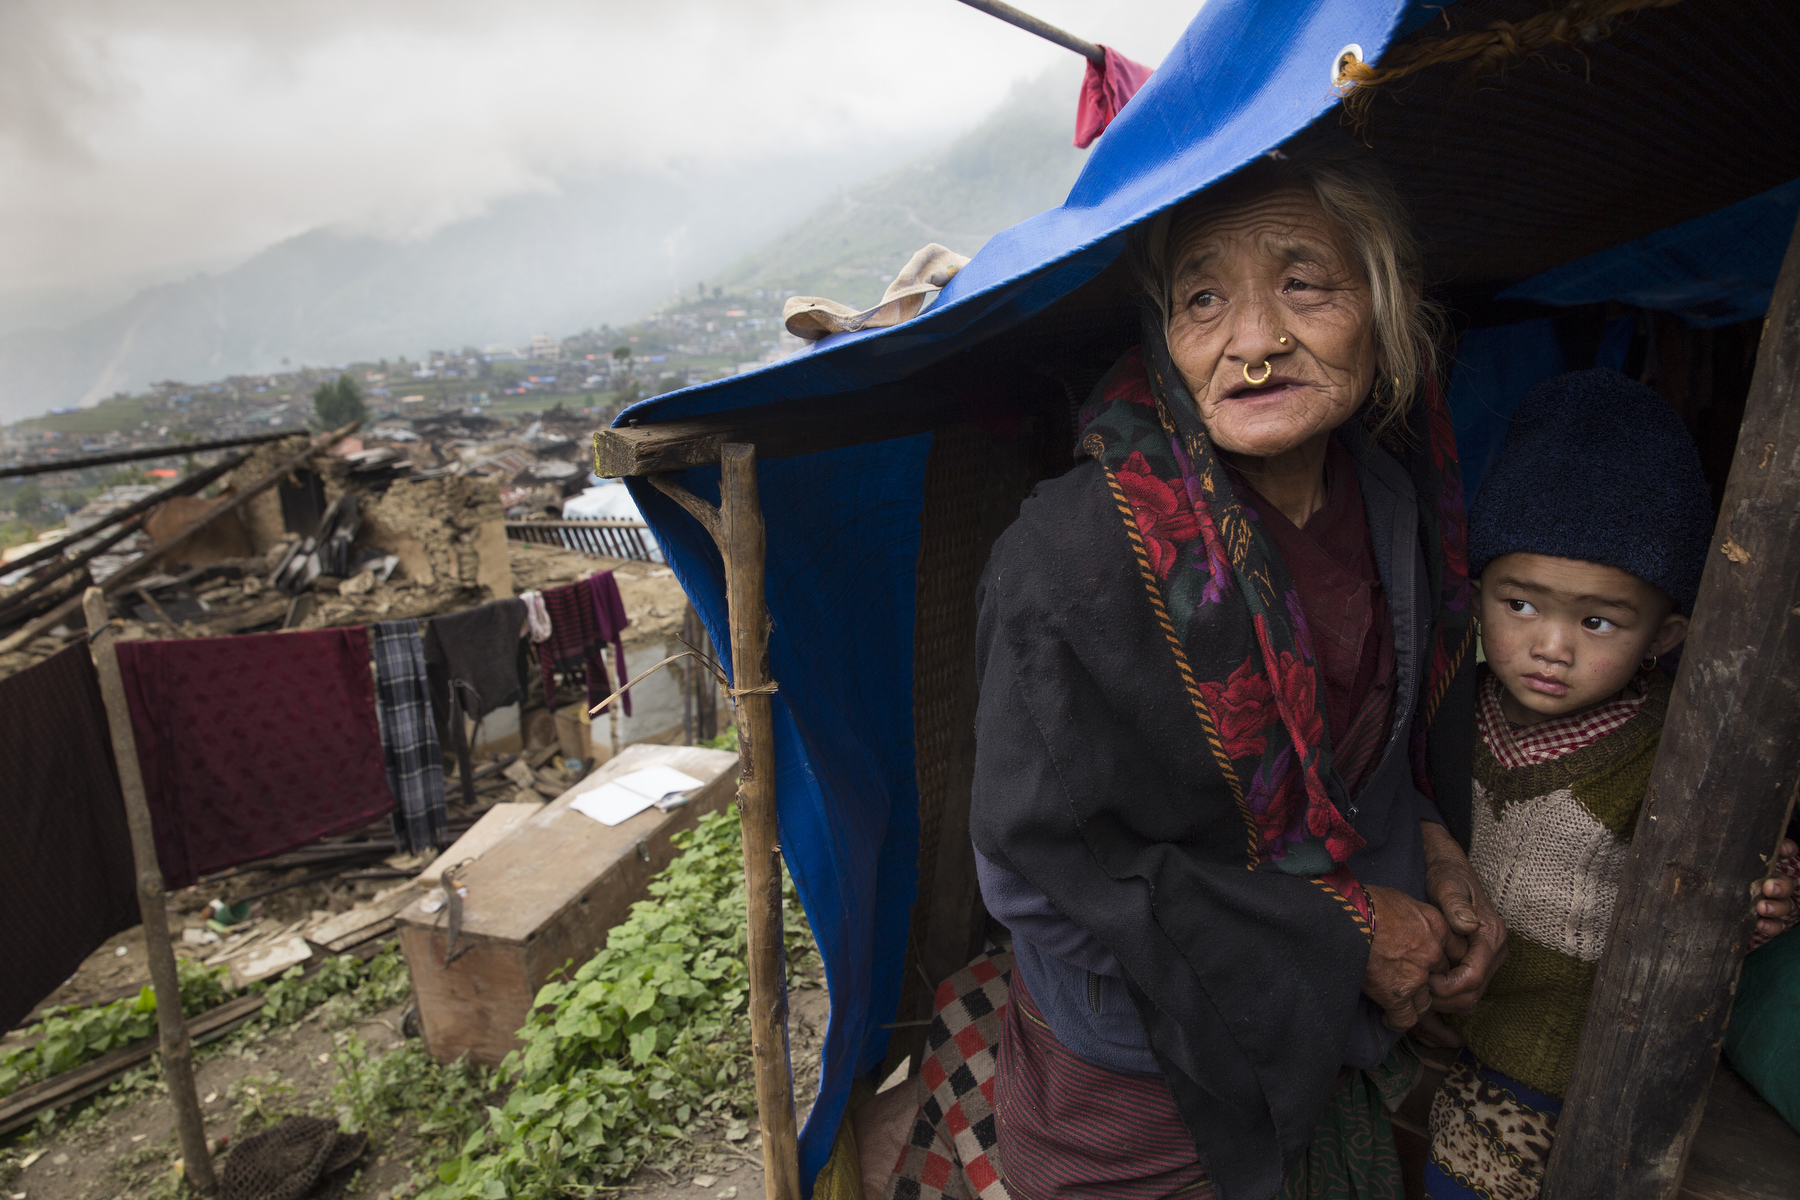 BARPAK, NEPAL -MAY 1, 2015:. Dhan Maya Ghale,68 holds her grandson, Sujal,3, hiding from the rain in a temporary shelter in Barpak where 60% of the village has been destroyed. The village is amongst the largest in Gorkha province with a population of around 10-12,000. Around 57-60 died. So far almost 6,000 people have died in Nepal\'s worst earthquake in 80 years.  (Photo by Paula Bronstein/ for the Wall Street Journal)